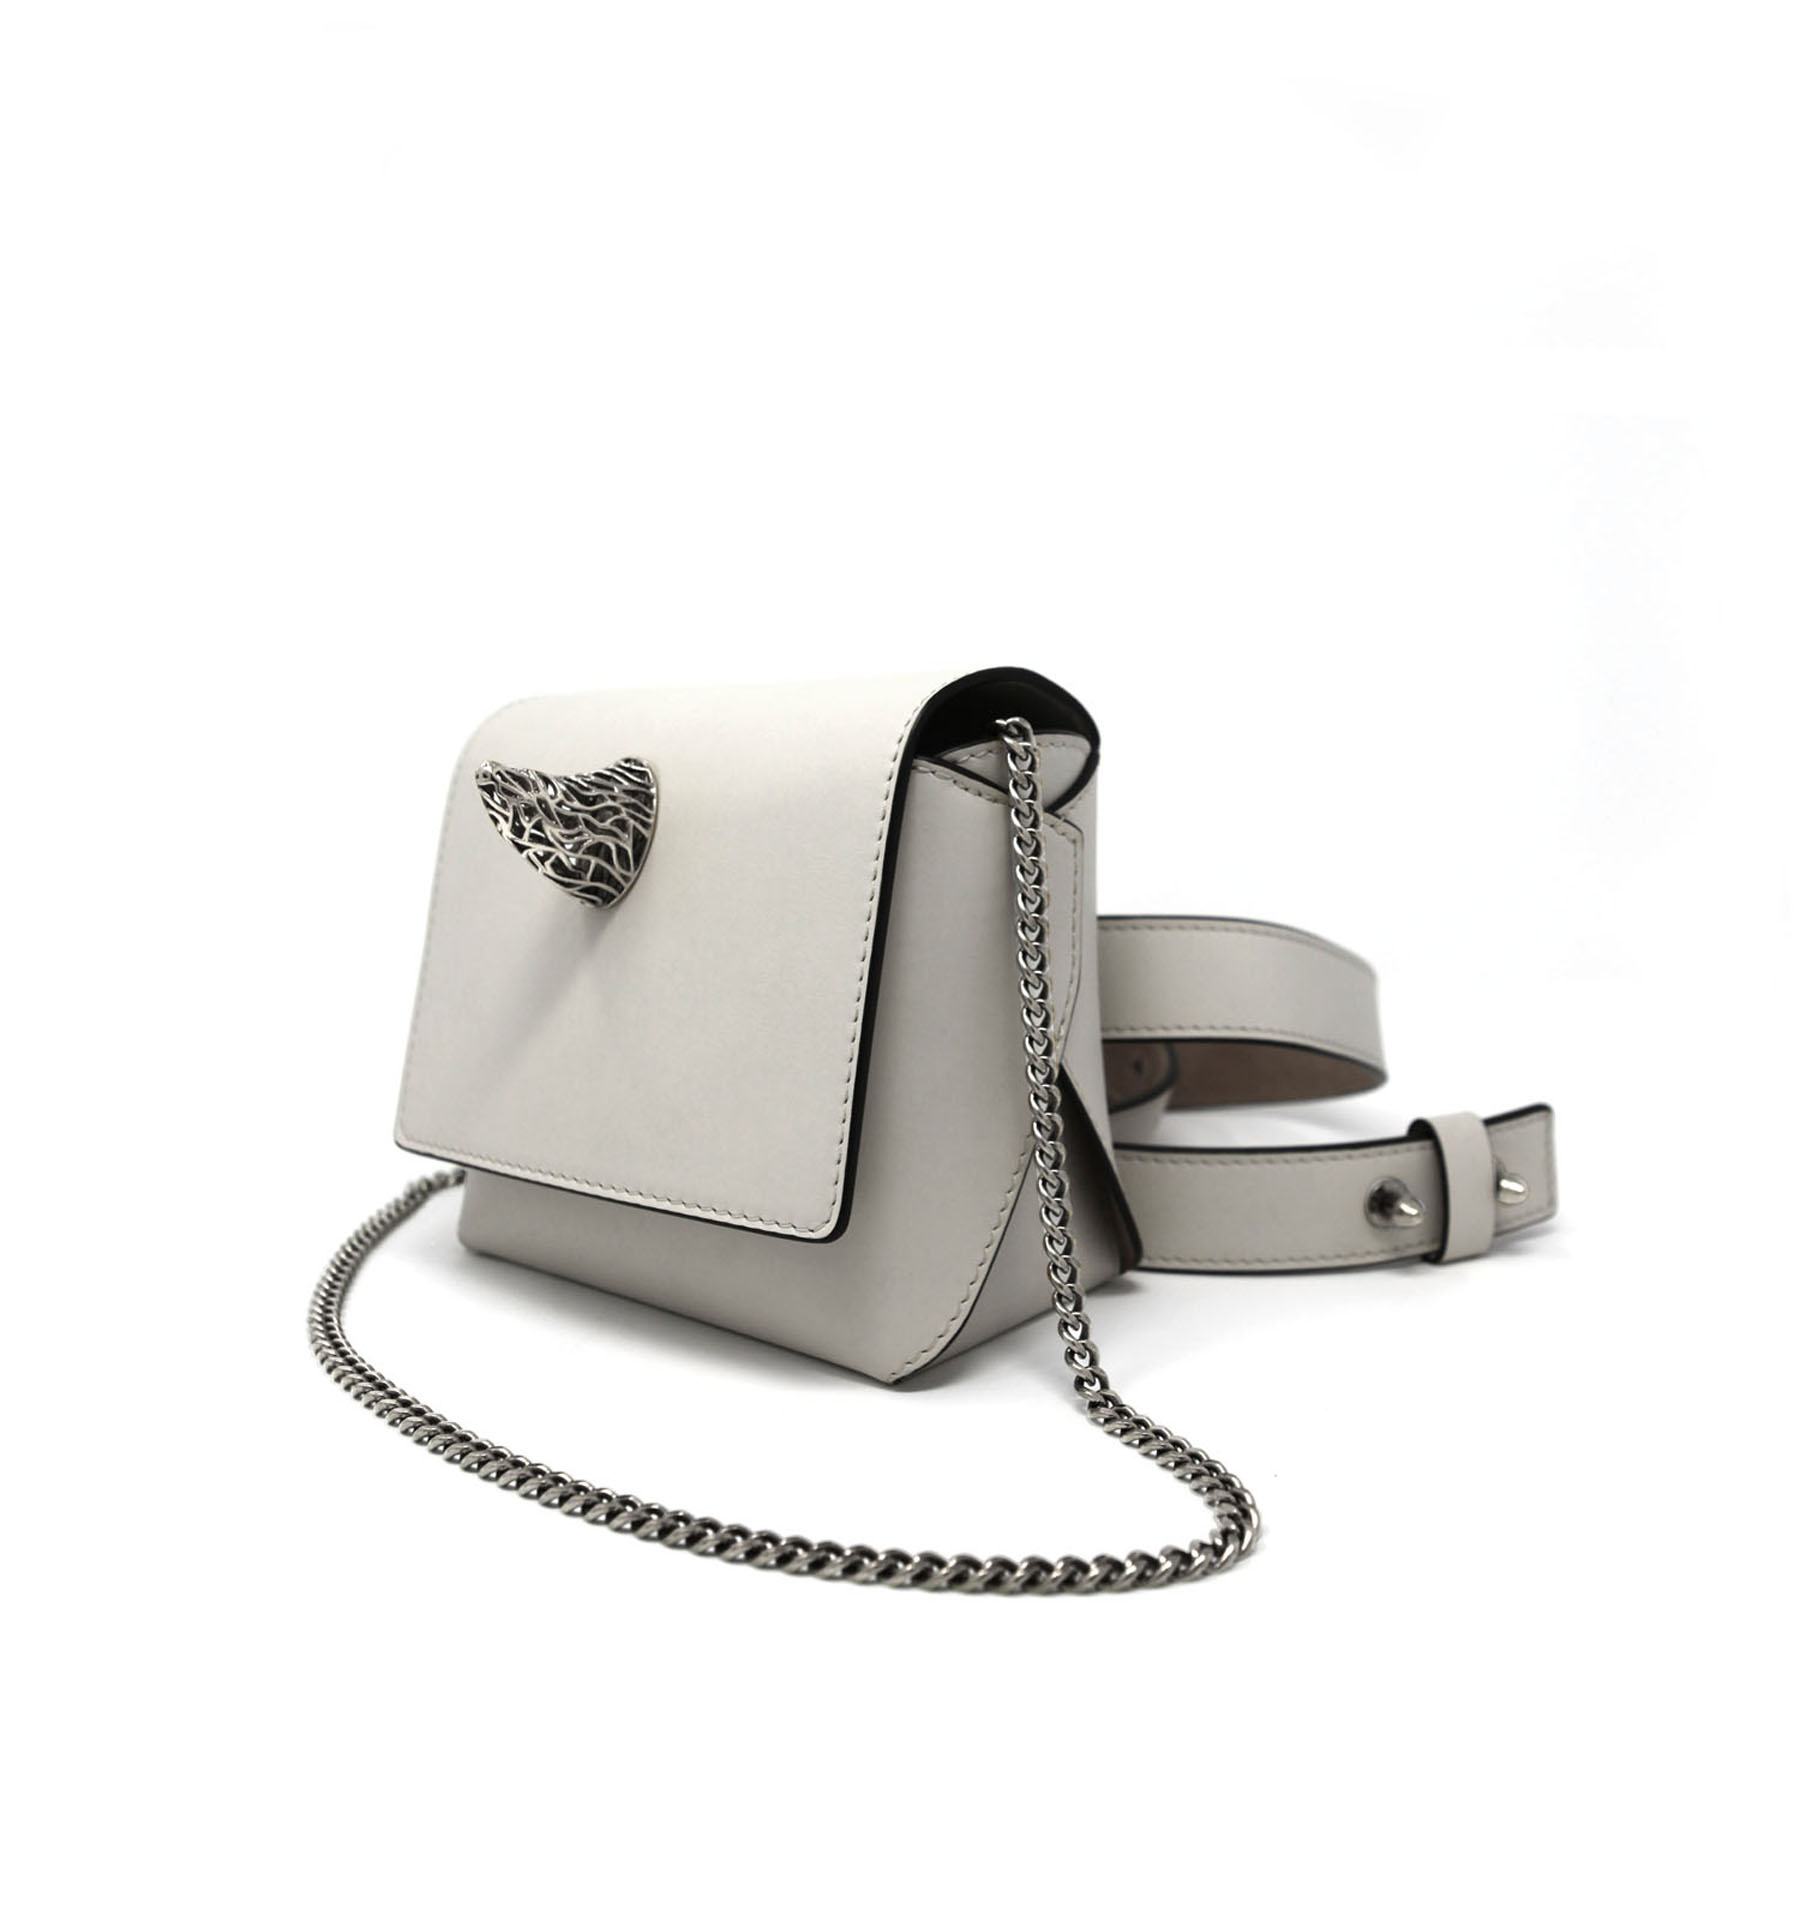 Belt Bags 27 - Maissa by Giulia Ber Tacchini Italian Custom Jewels and Luxury